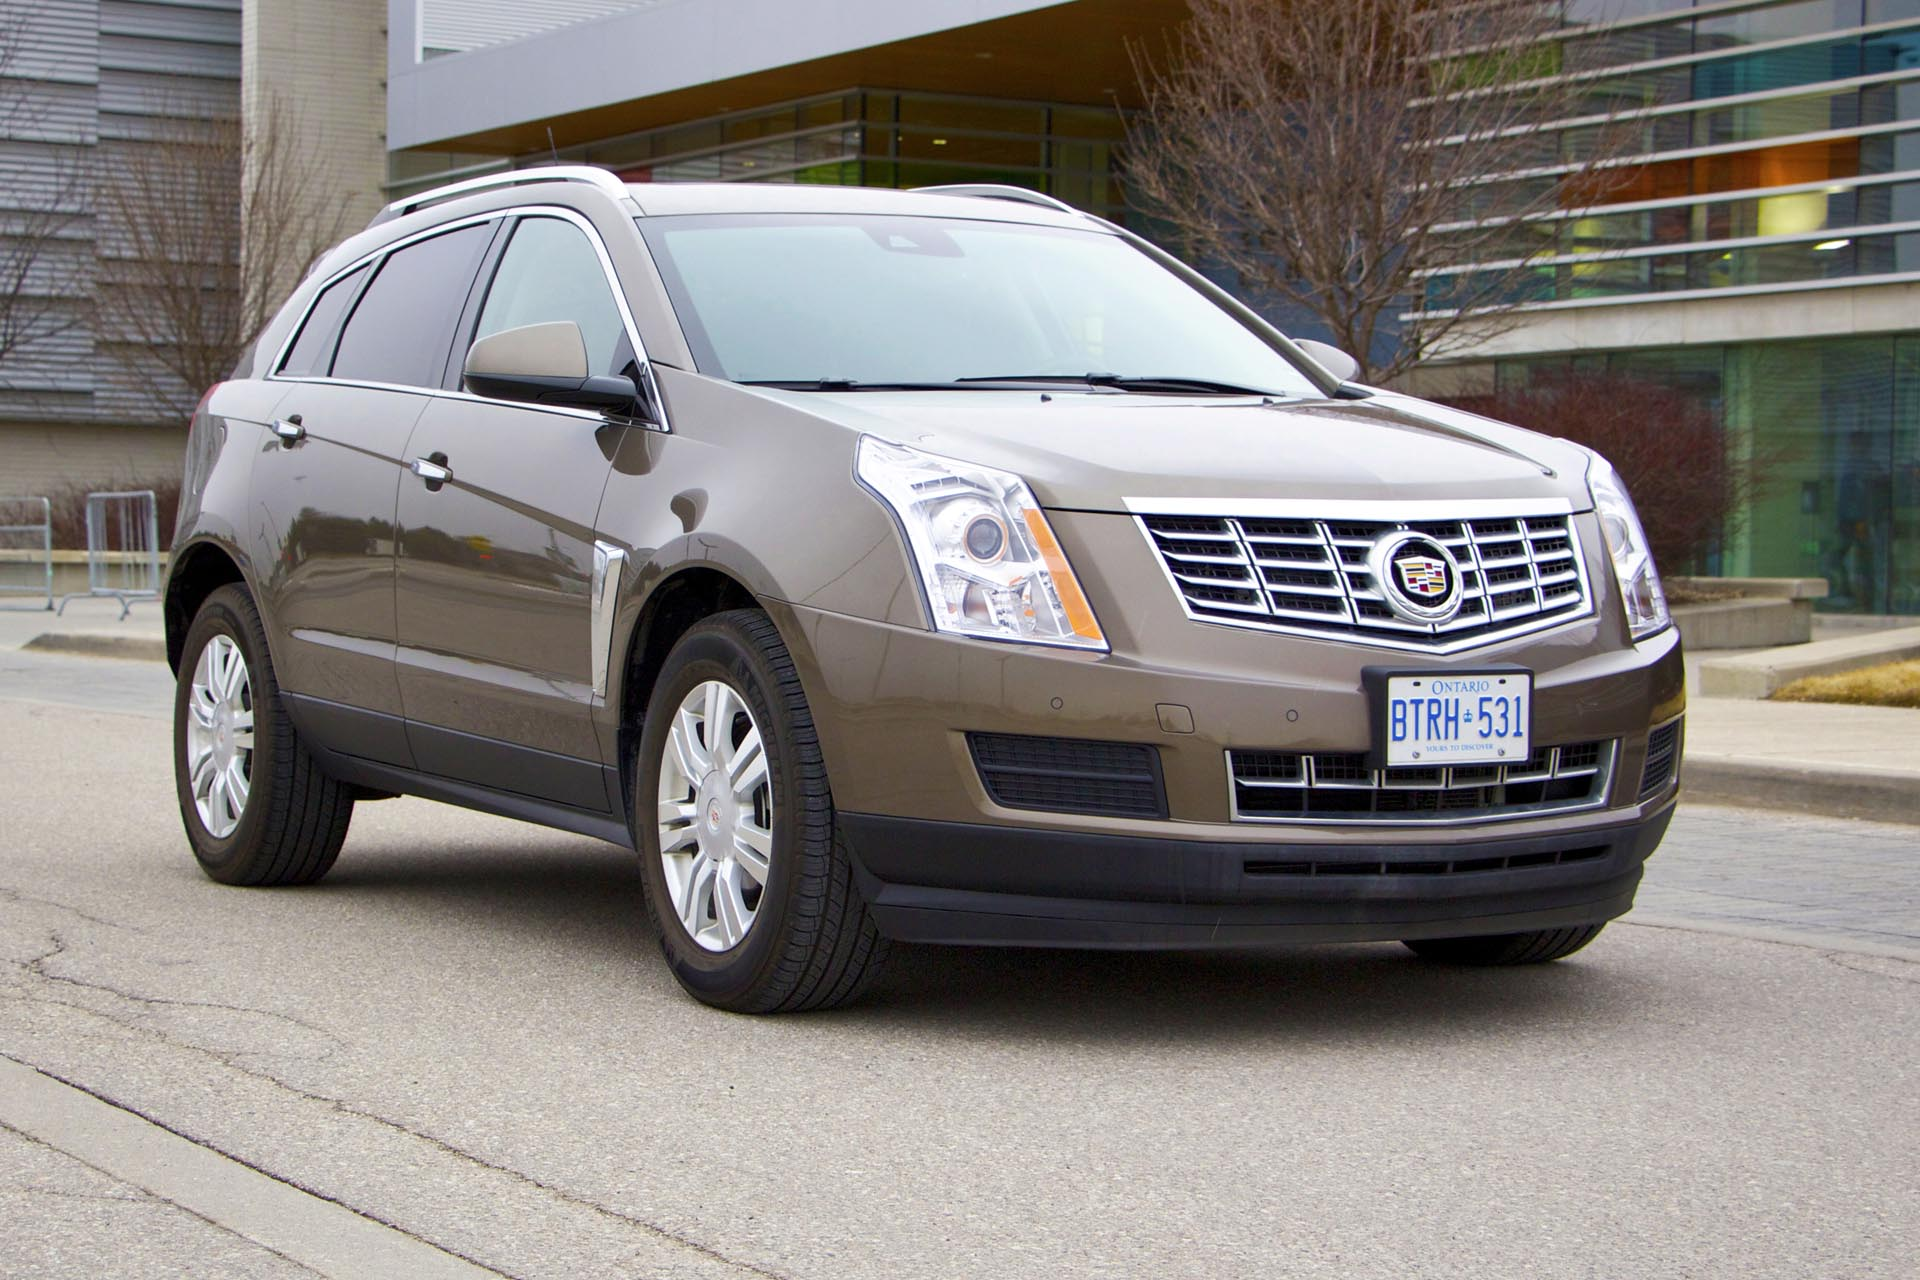 Test Drive: 2015 Cadillac SRX - Page 3 of 3 - Autos.ca ...